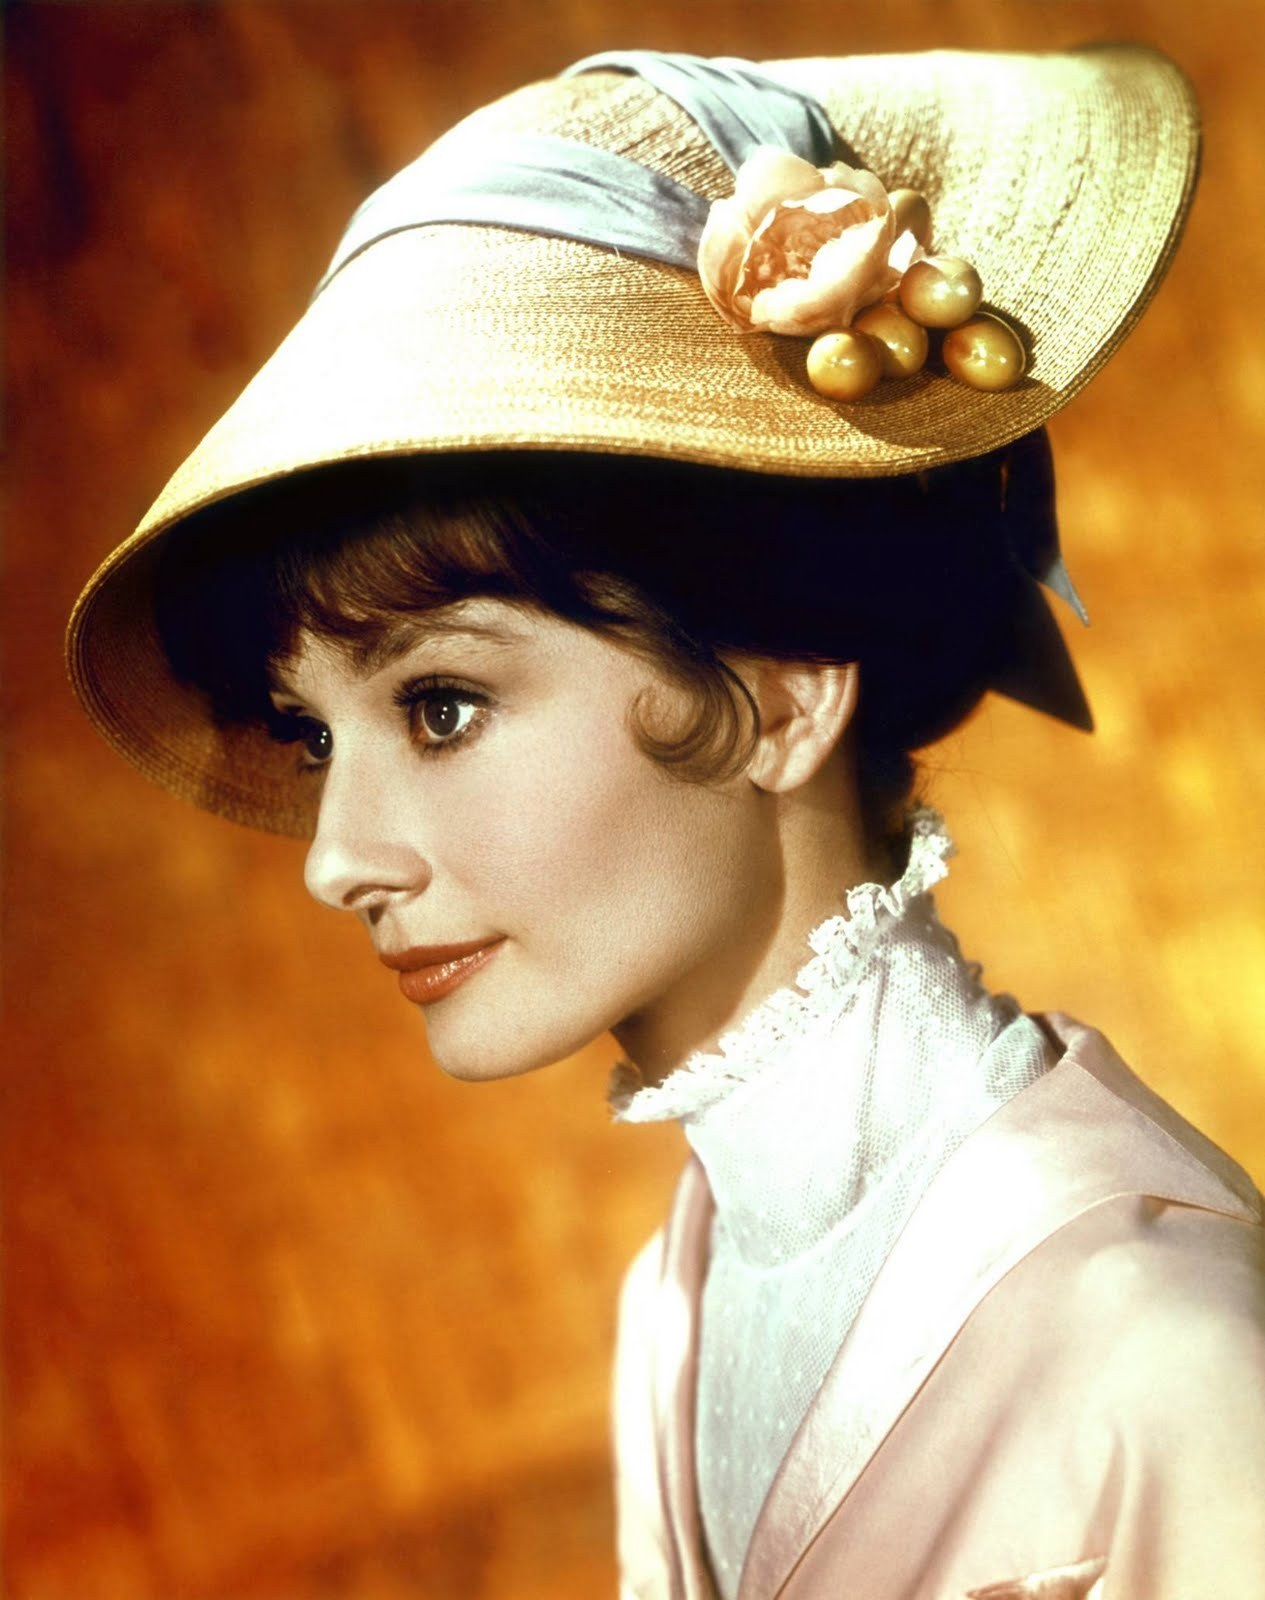 Audrey in My Fair Lady